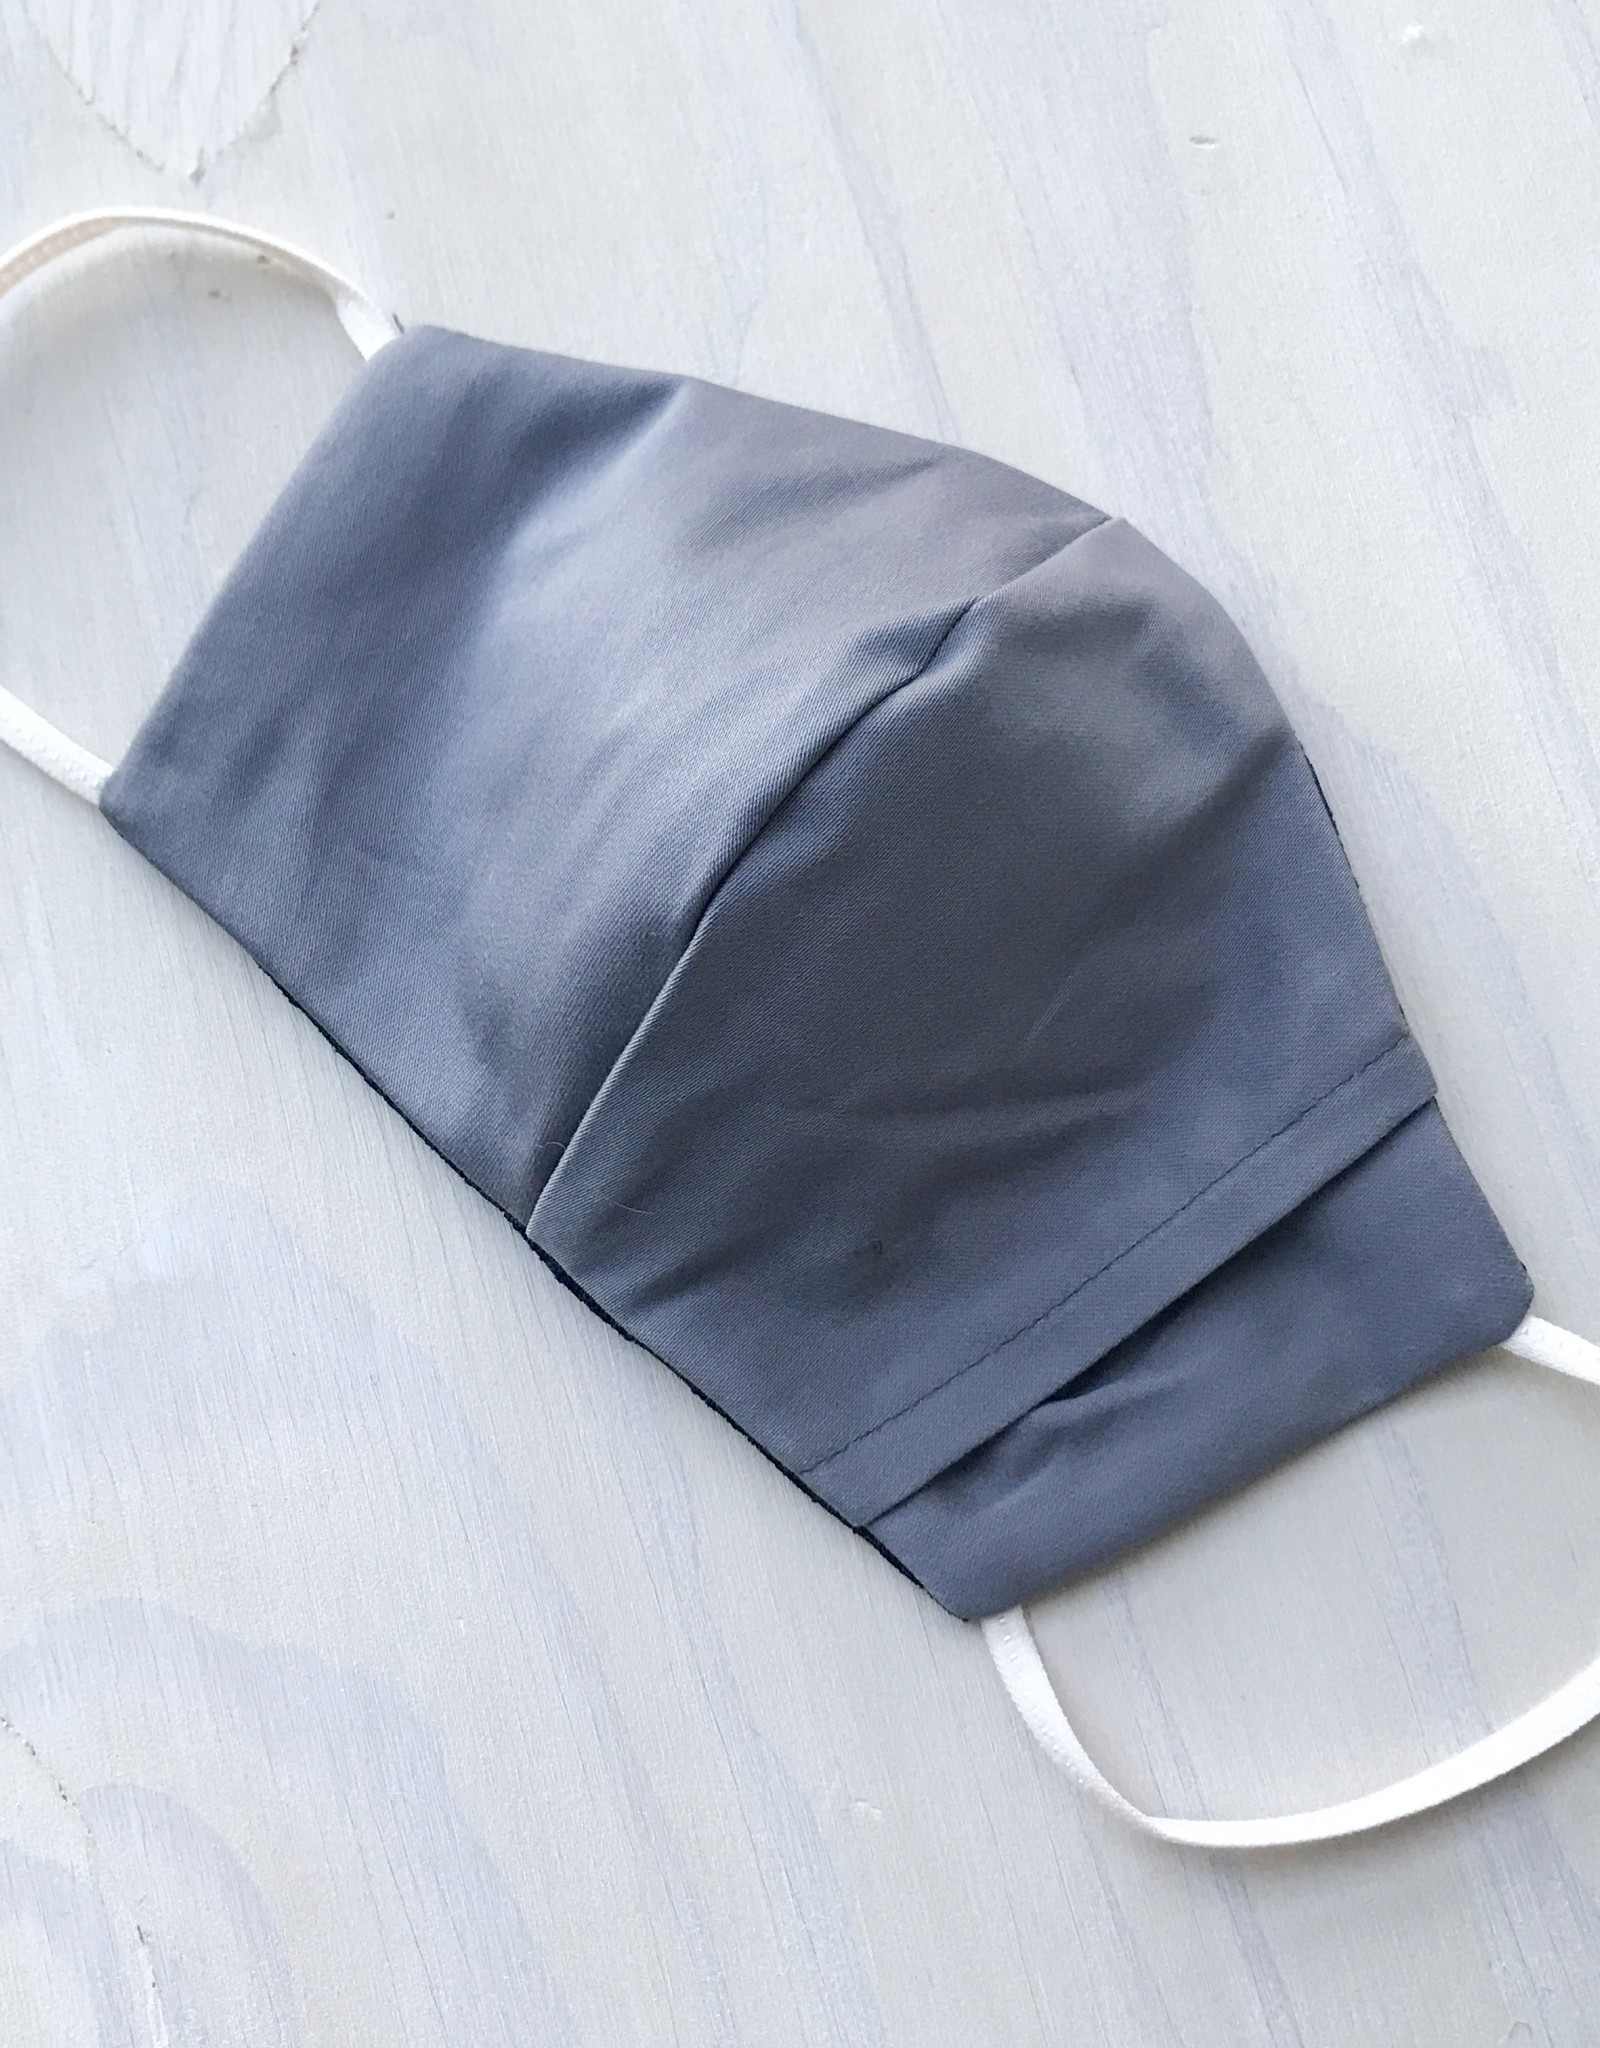 Devil May Wear Two Layer Around the Ear Masks with Filter and Filter Pocket, Cotton, School of Fish